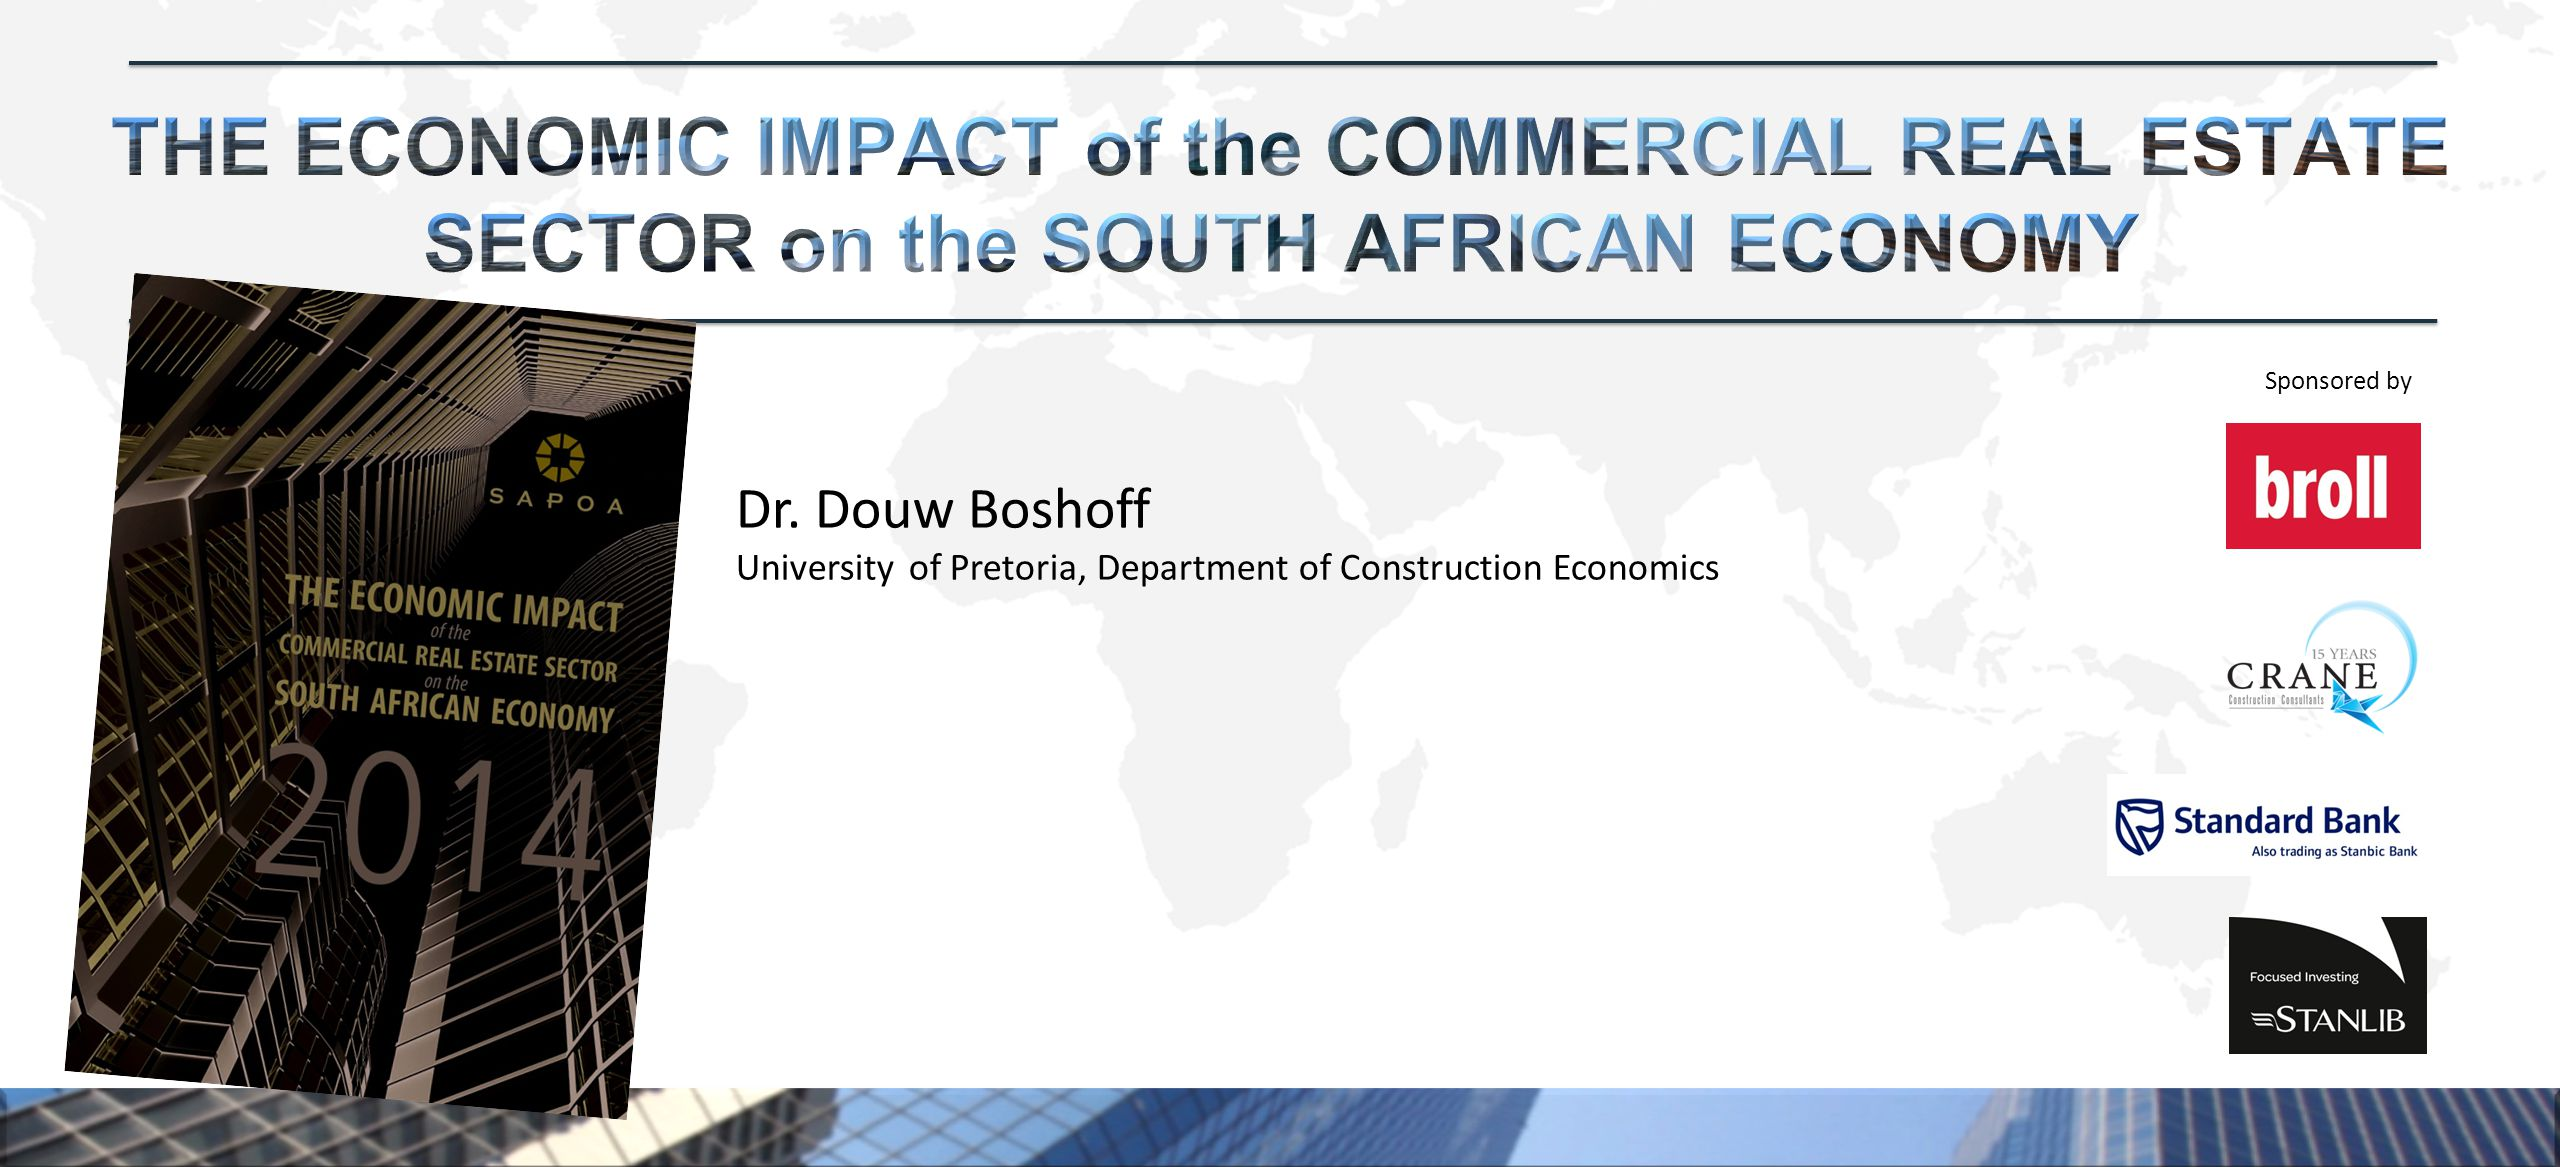 Sponsored by Dr. Douw Boshoff University of Pretoria, Department of Construction Economics